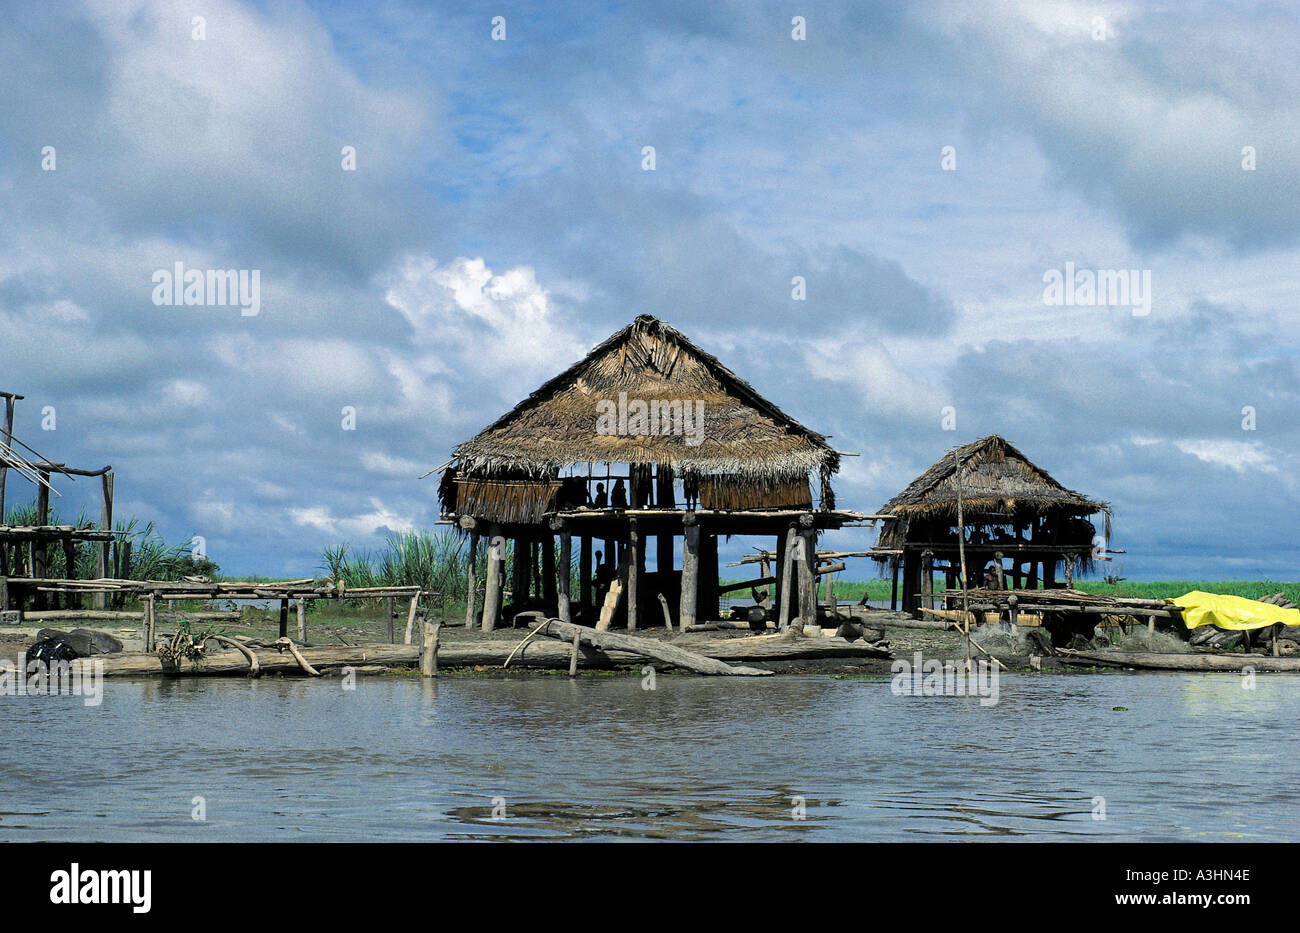 dwelling houses near village of karau murik lake district province of sepik papua new guinea - Stock Image